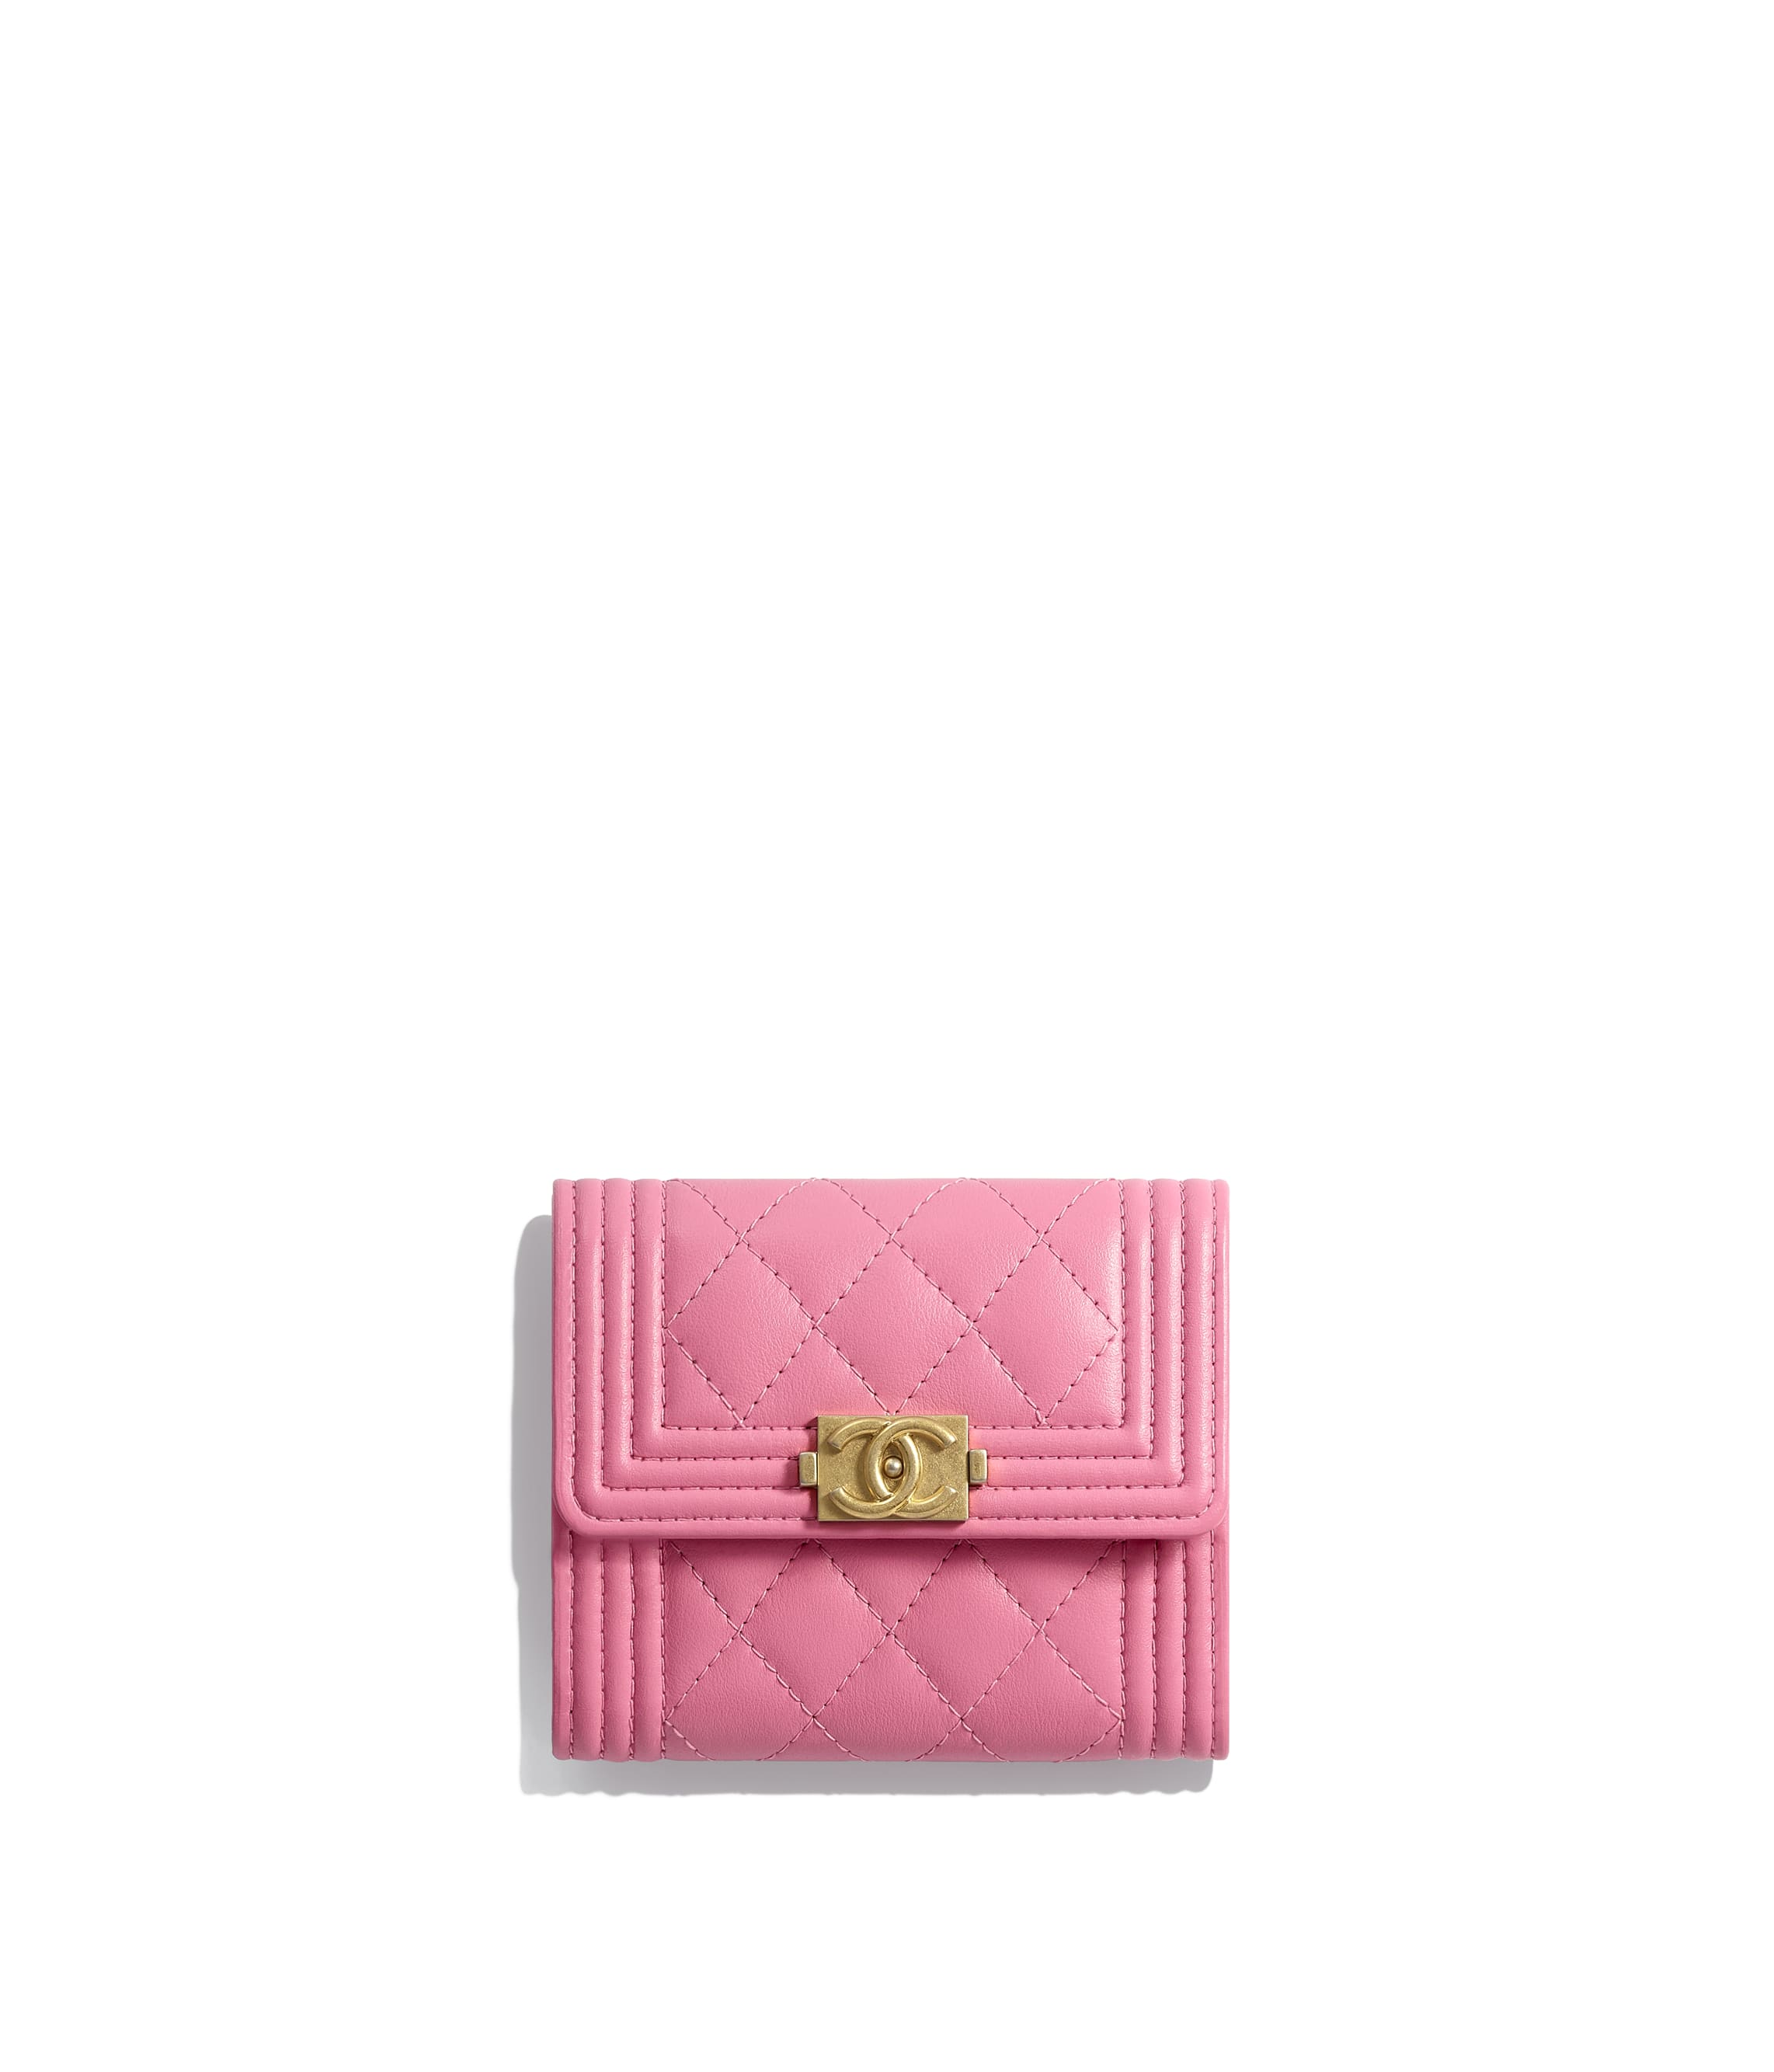 f5fc552b4b2e3 Boy Chanel Small Flap Wallet Calfskin Gold Tone Metal Pink